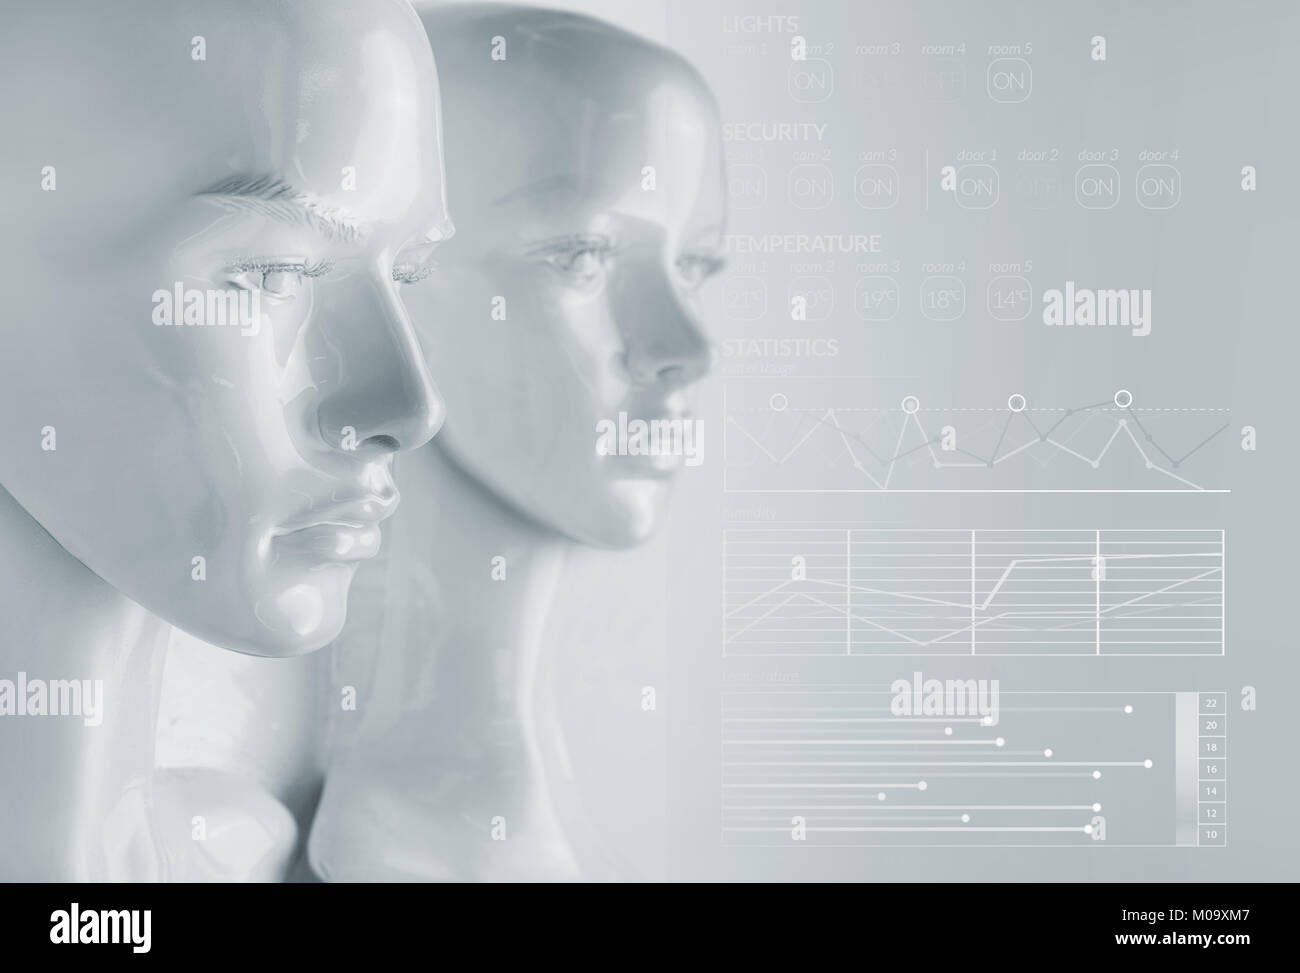 Artificial intelligence concept - graphs and diagrams - Stock Image